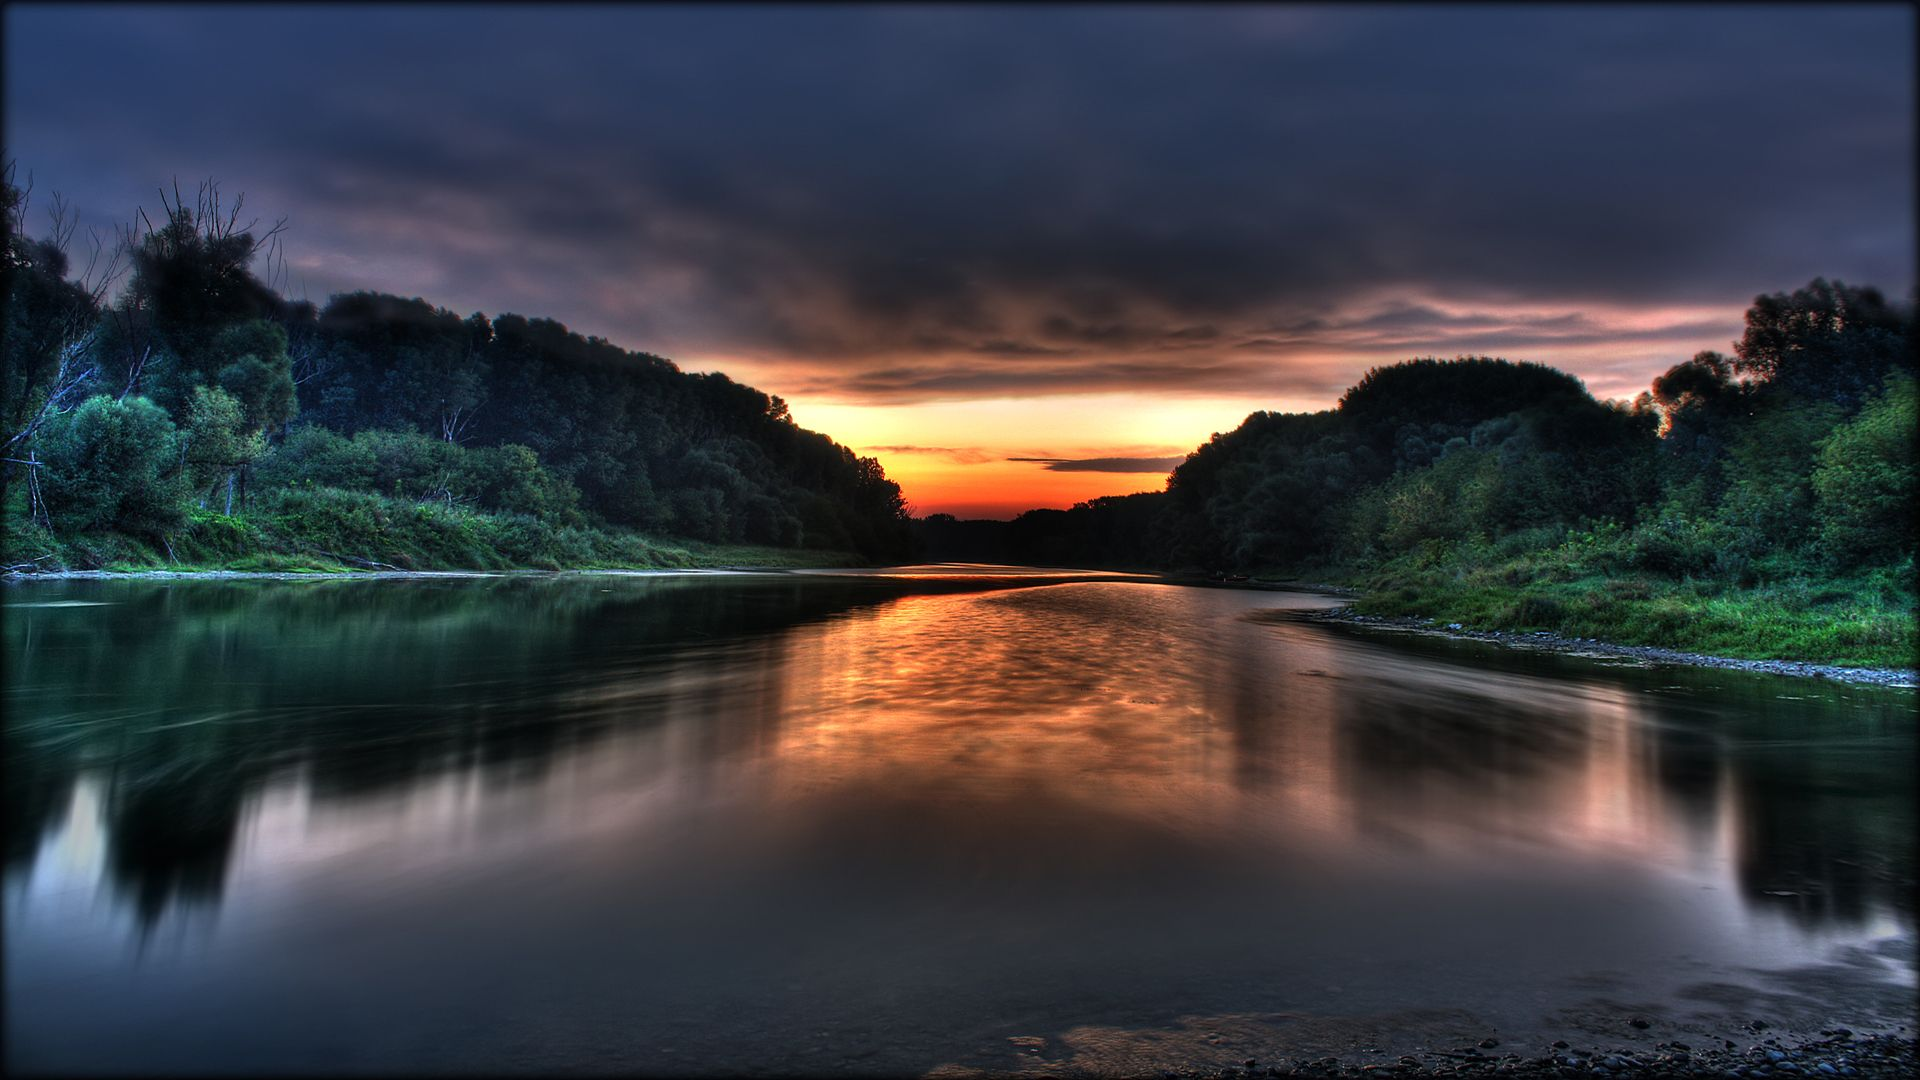 sunrise hdtv 1080p wallpaper you are viewing the nature wallpaper 1920x1080